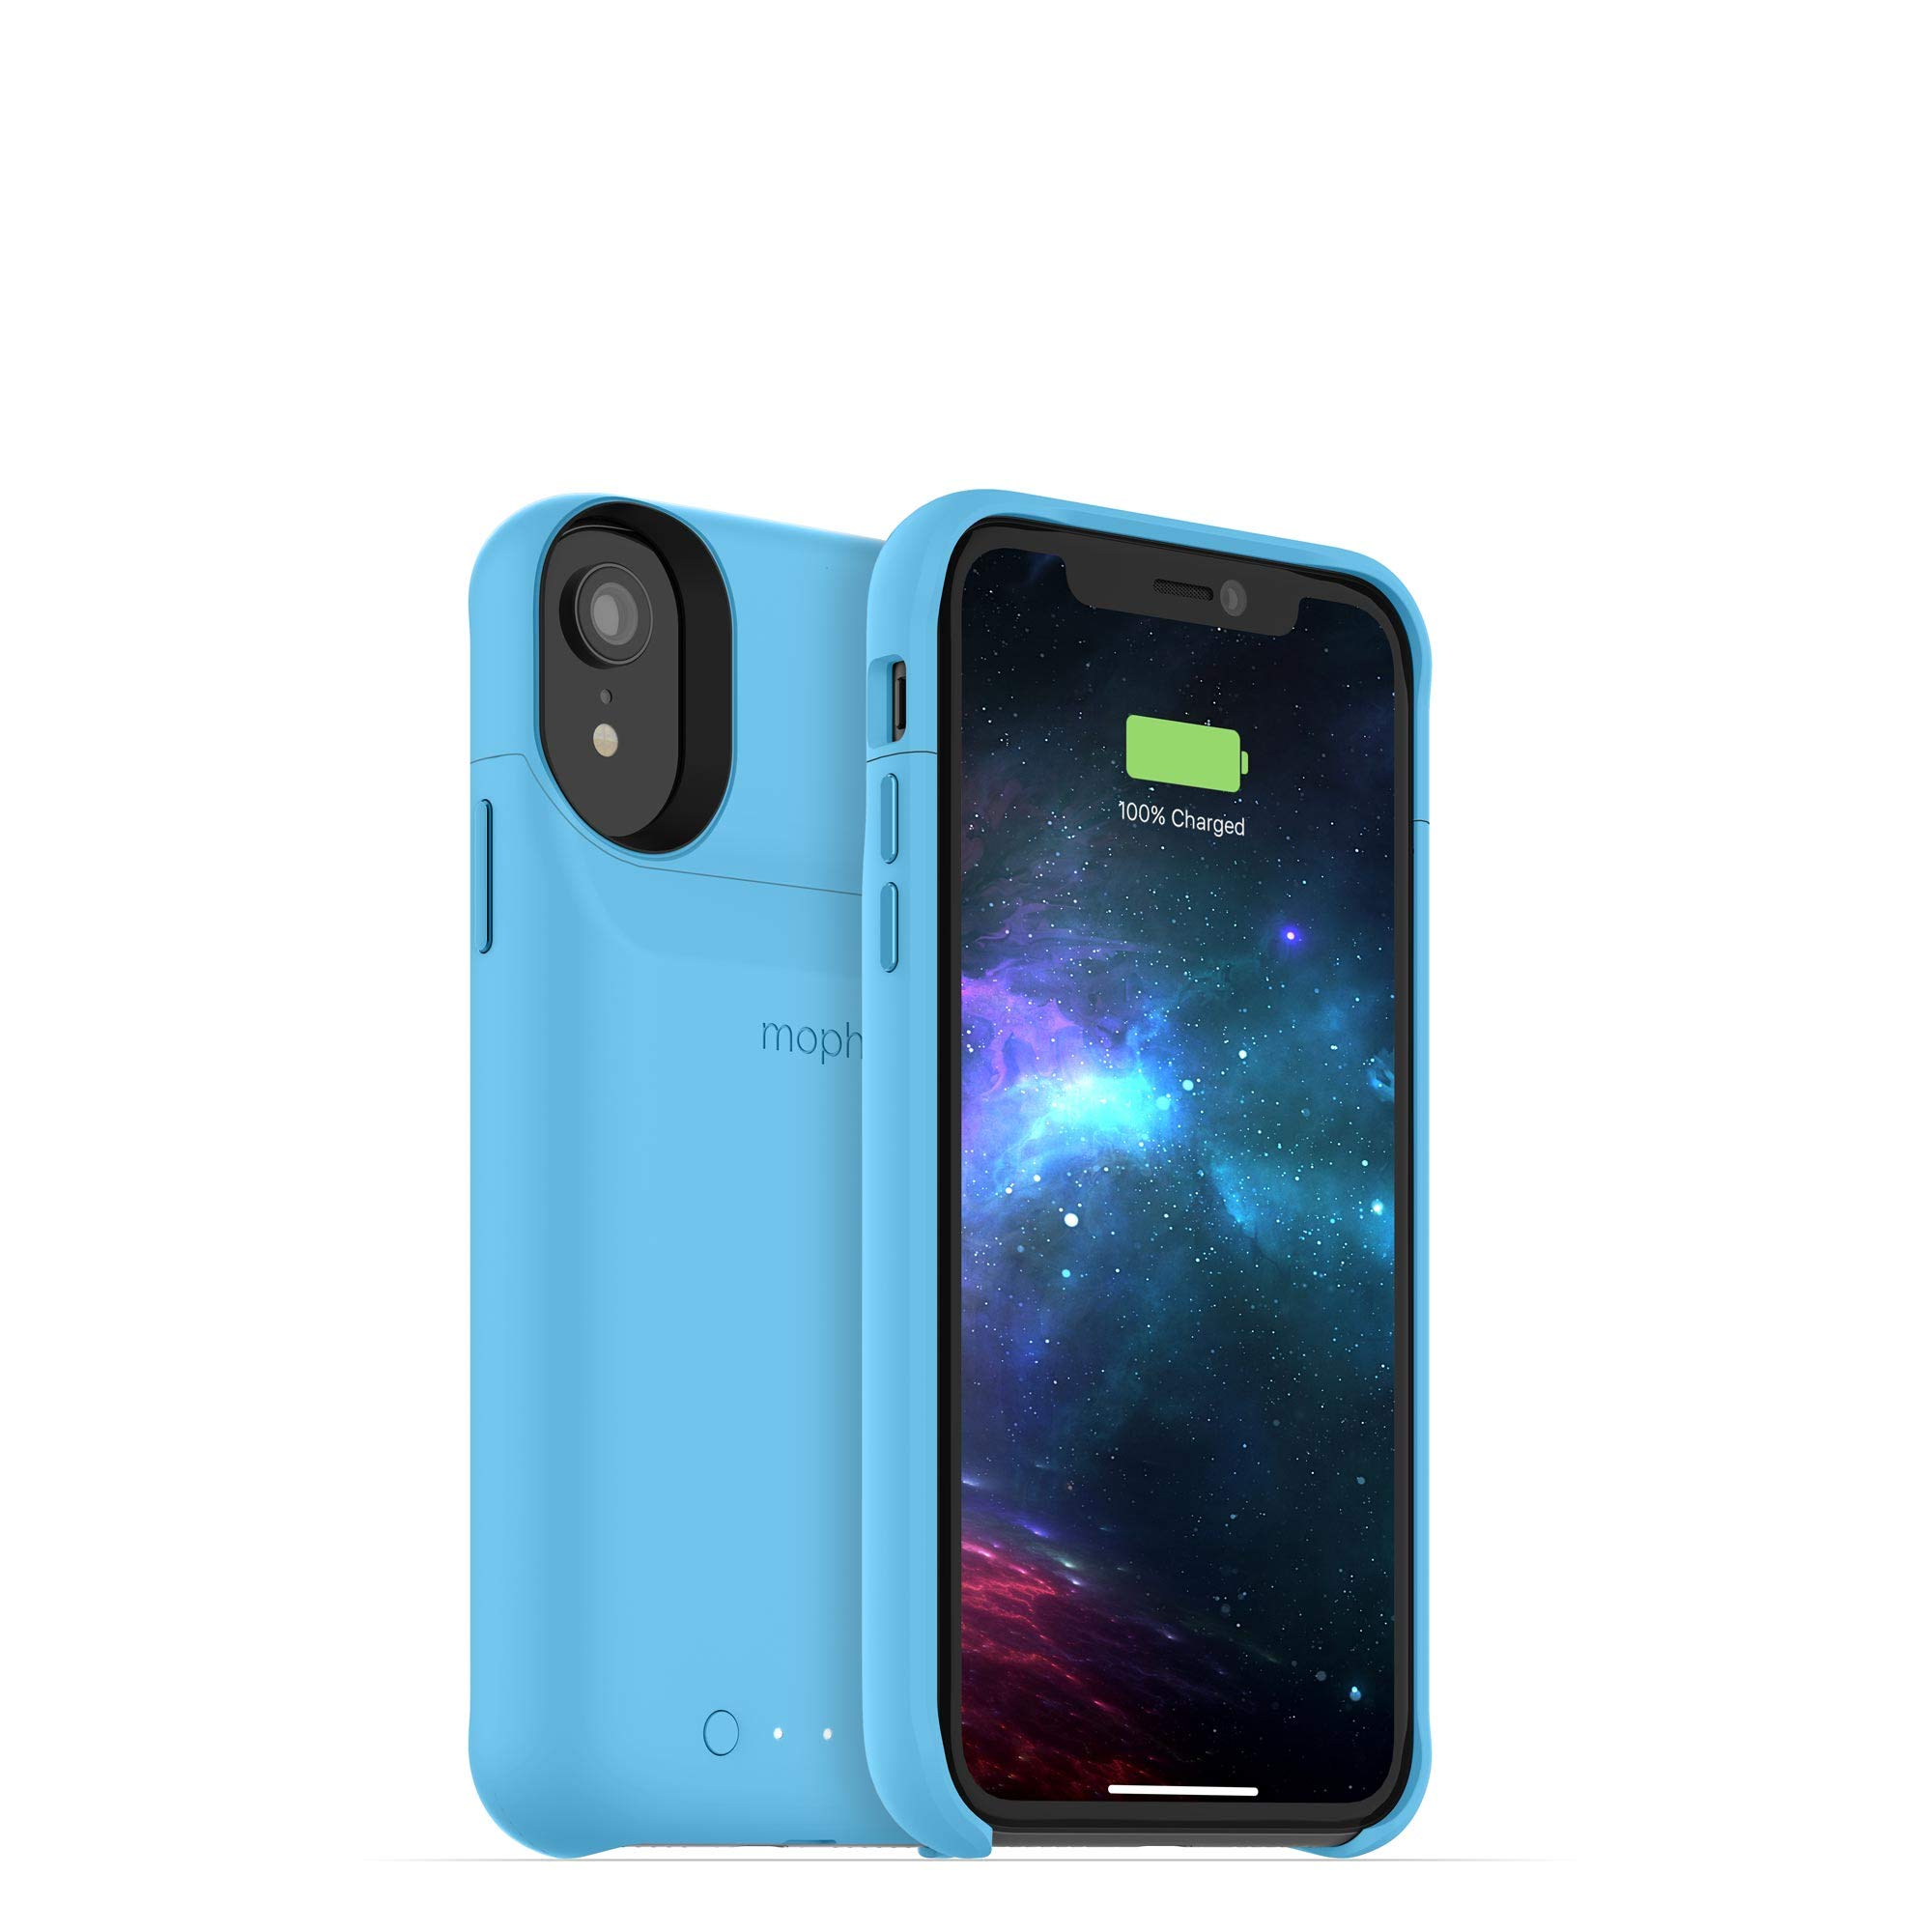 Juice Pack Access Battery Case Made for Apple iPhone Xr (2,200mAh) - Blue